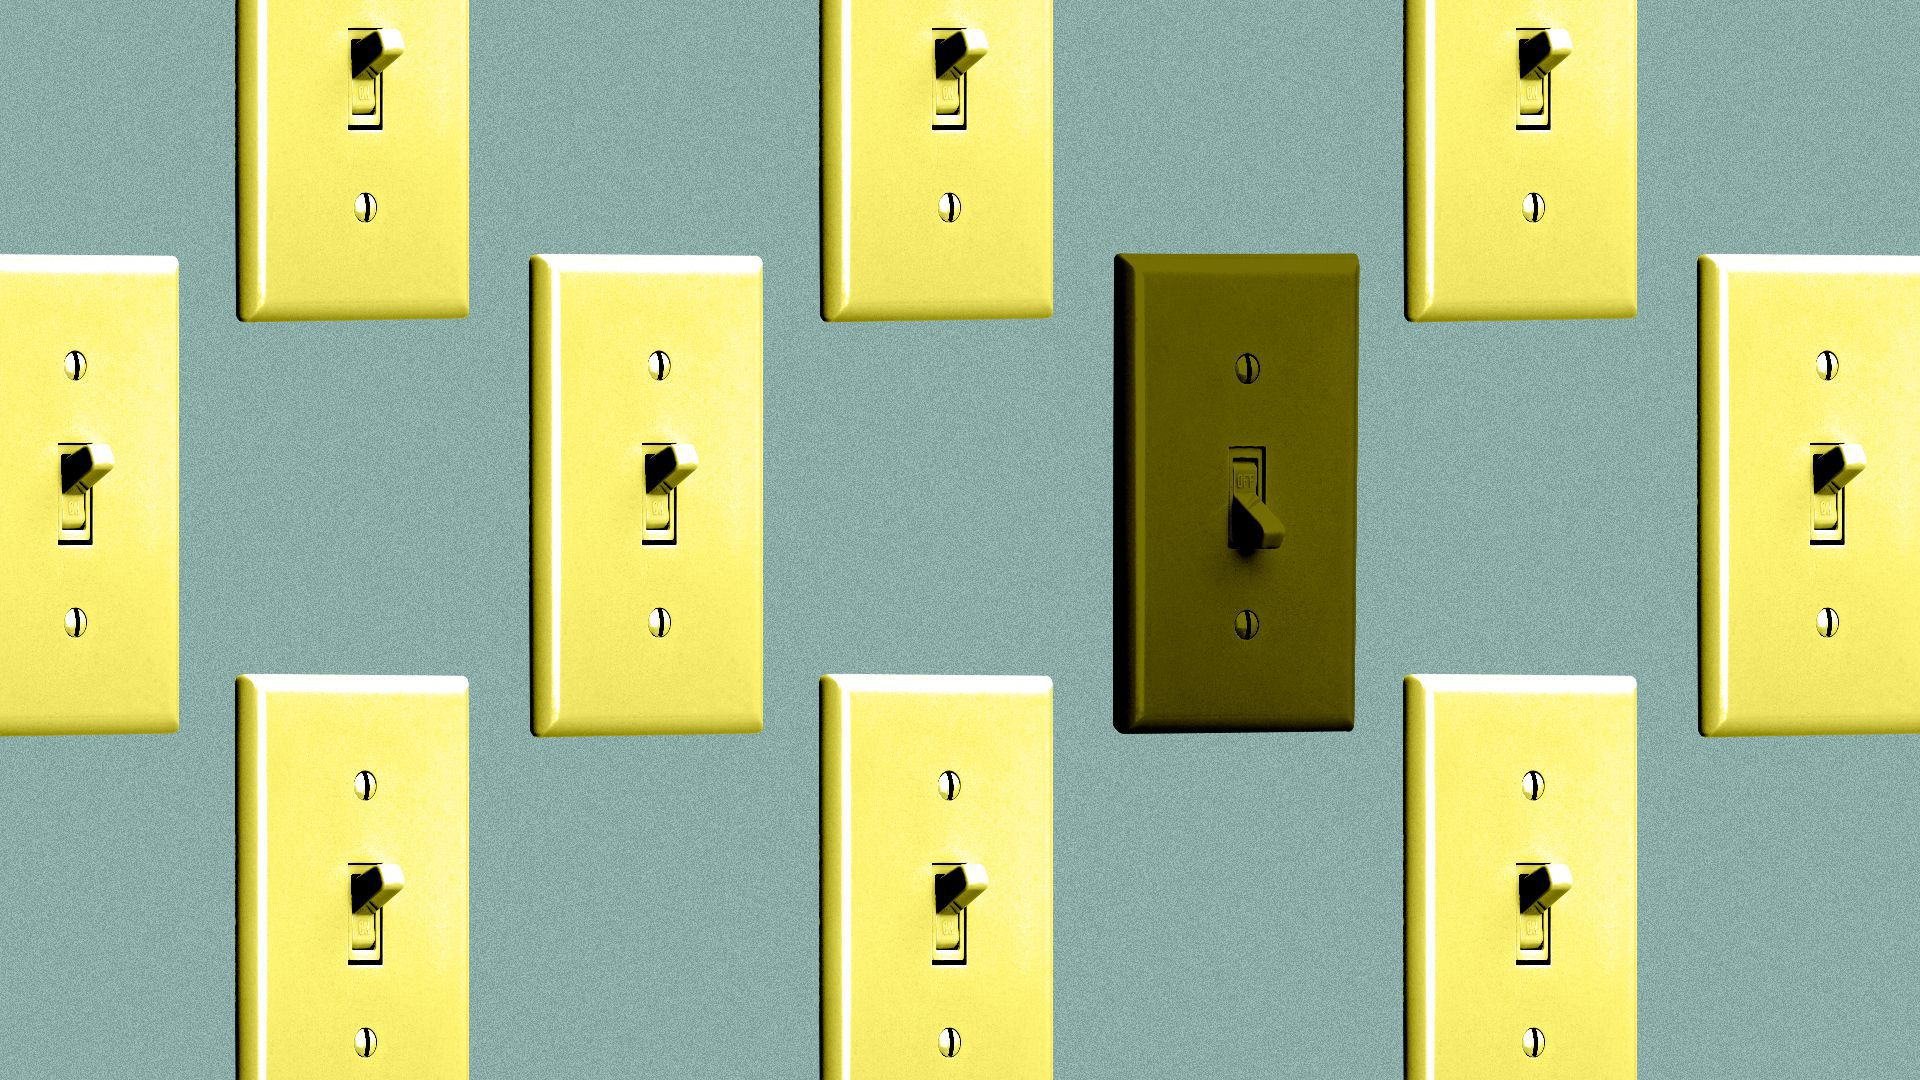 Illustration of a pattern of light switches, all of them turned on except one.